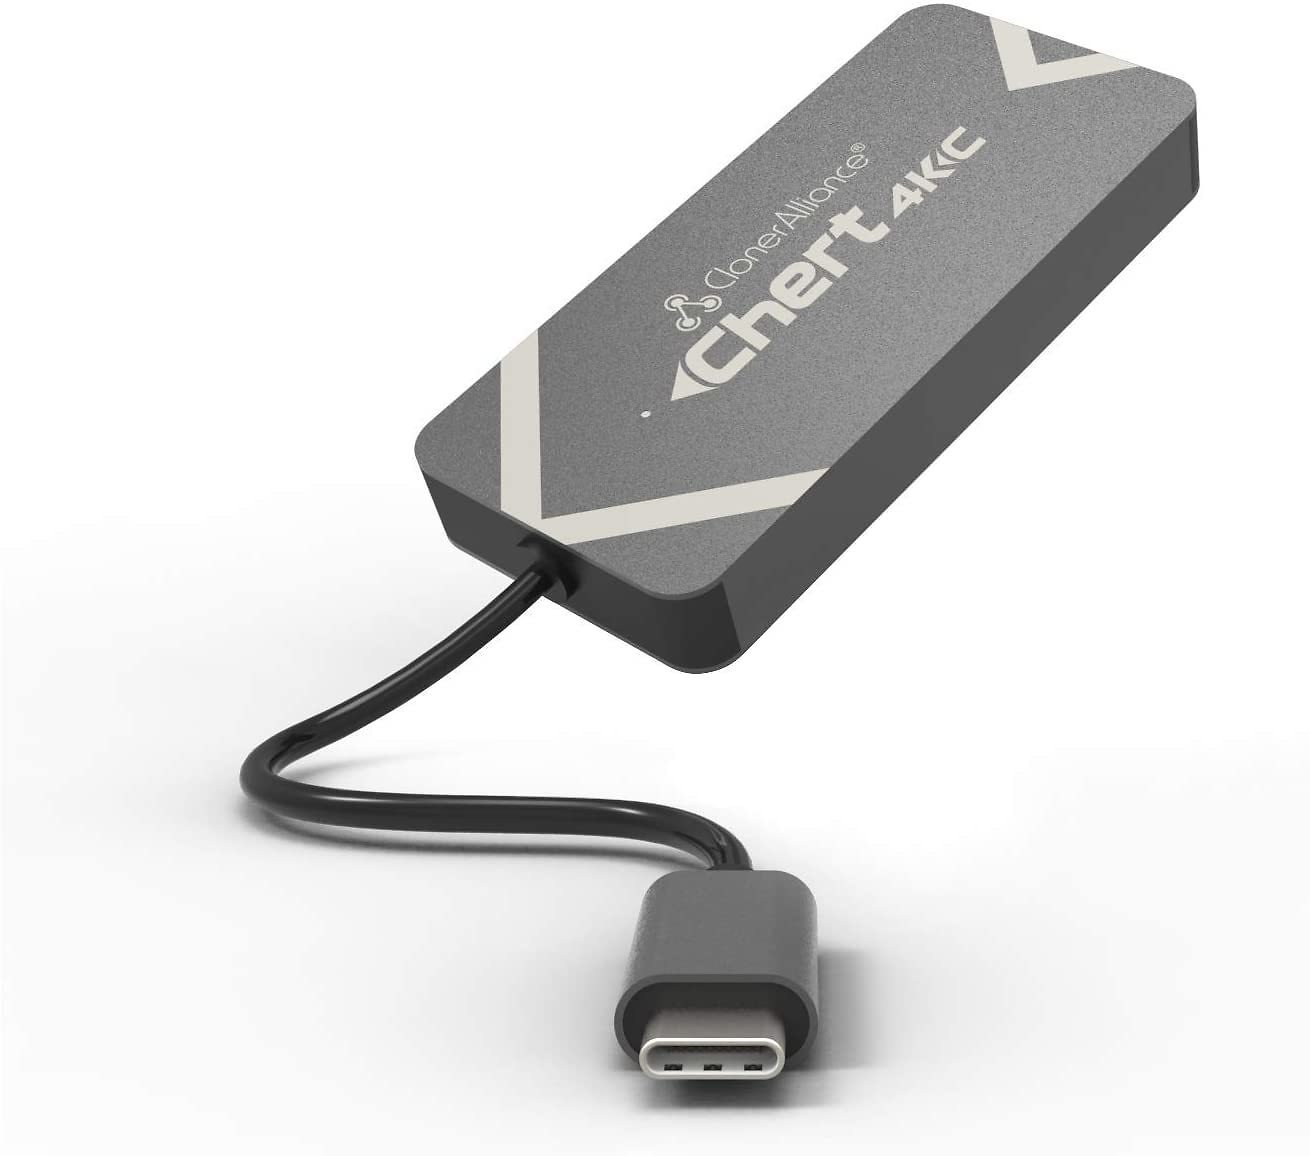 ClonerAlliance Chert 4KC, HDMI to USB-C Video Capture Dongle for $130.89